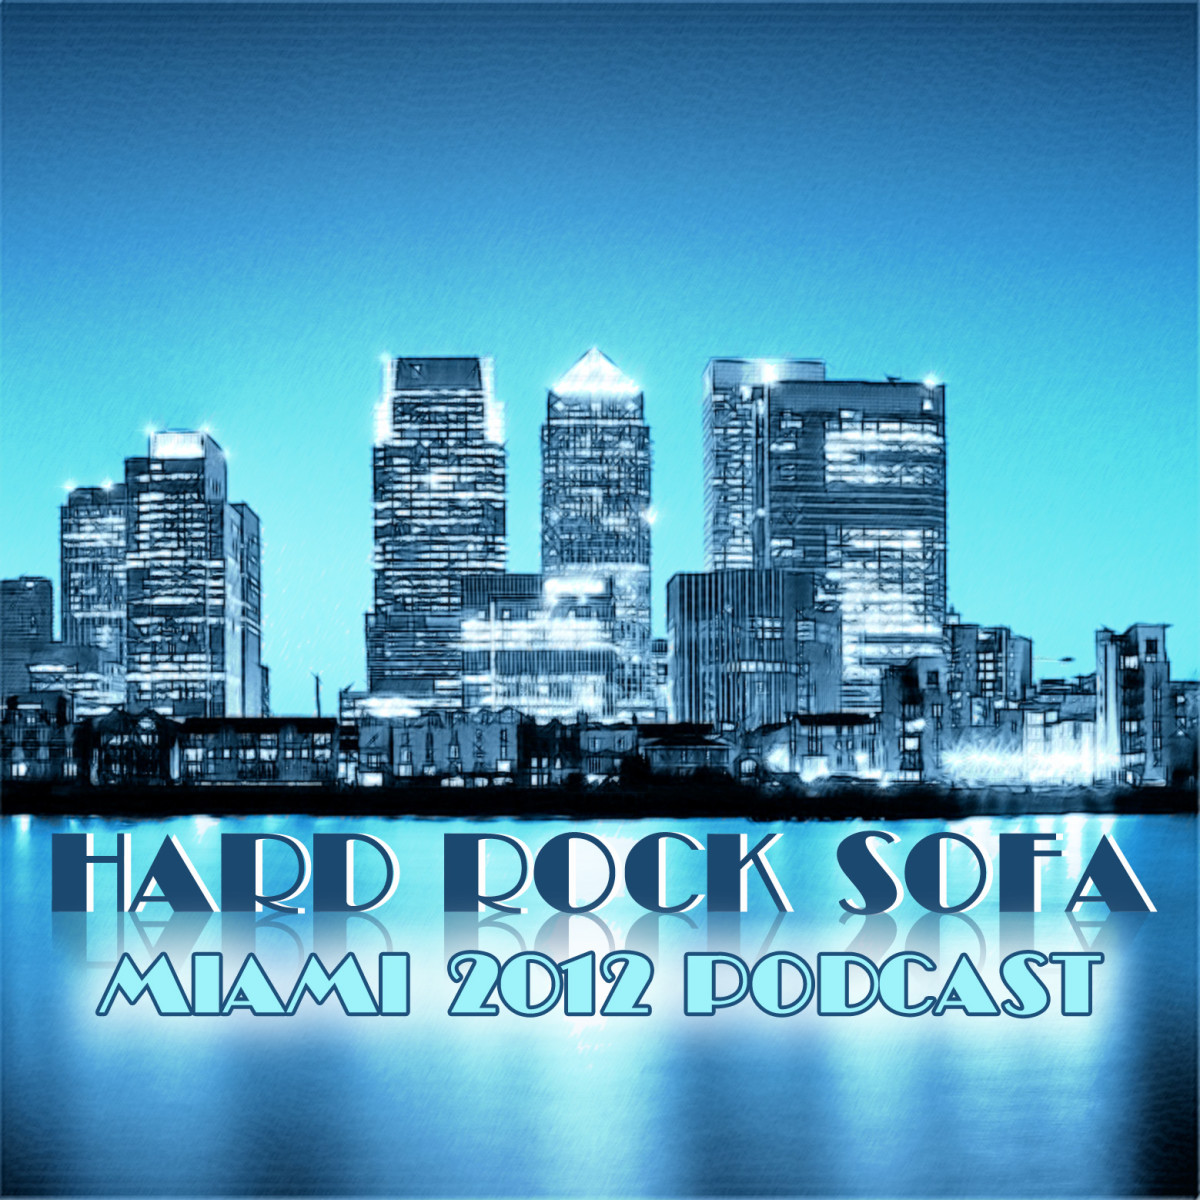 miami_2012_podcast